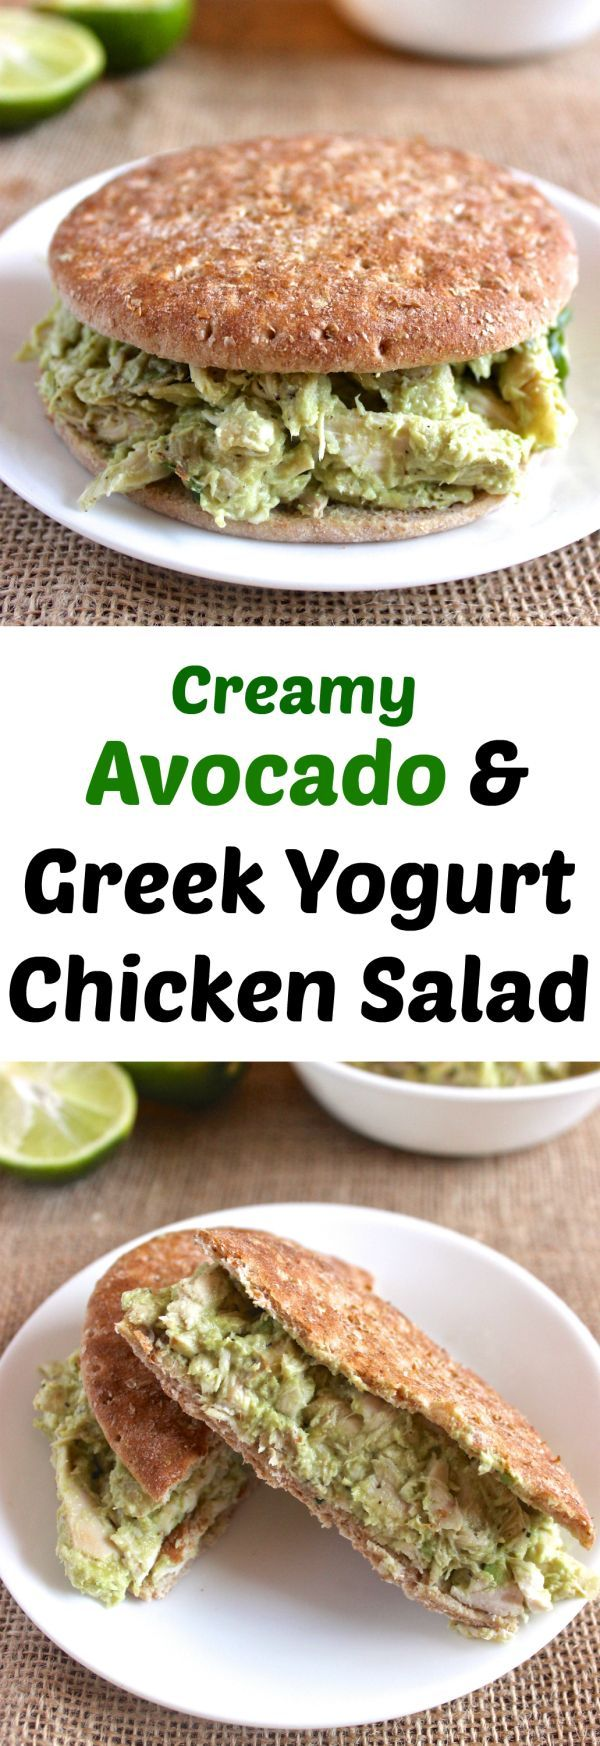 Healthy Chicken Salad made w/ NO mayo!